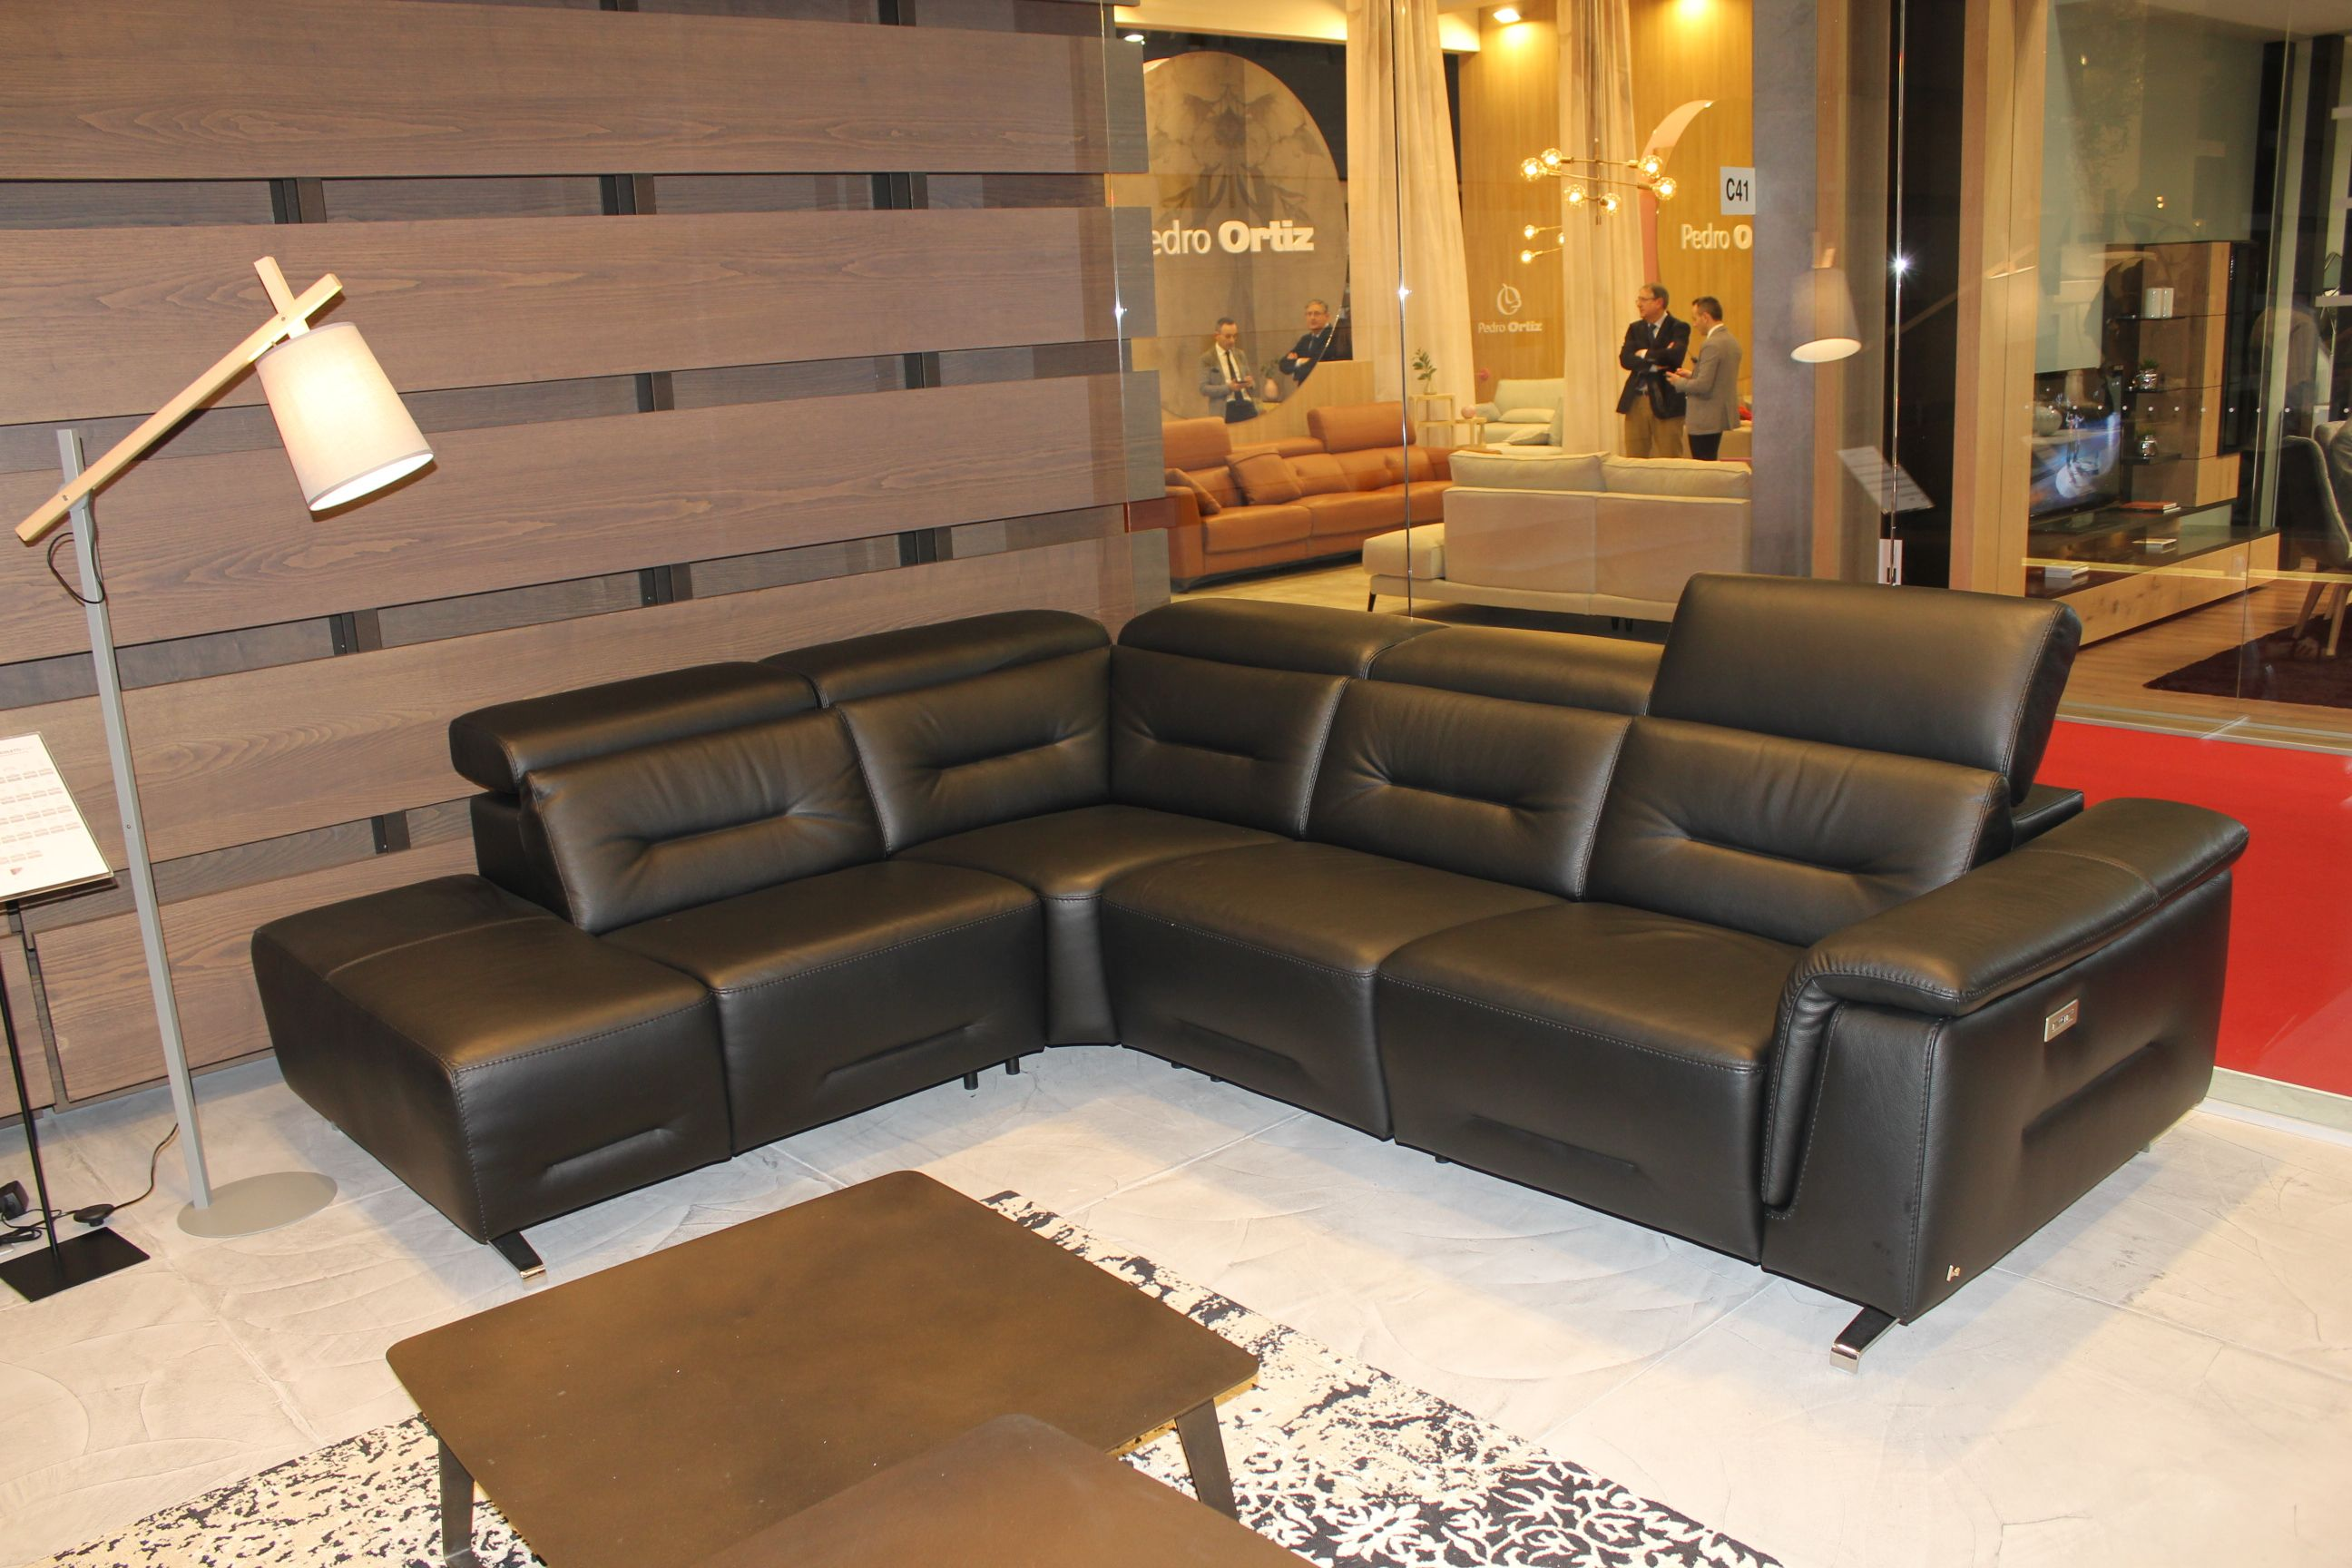 Sofas Sectionalsofa Sectional Modelsofa Sofafashion Modelsofa Sofaset Sofasale Sofaforsale Creativefurniture Newhome Contemporary Sofa Set